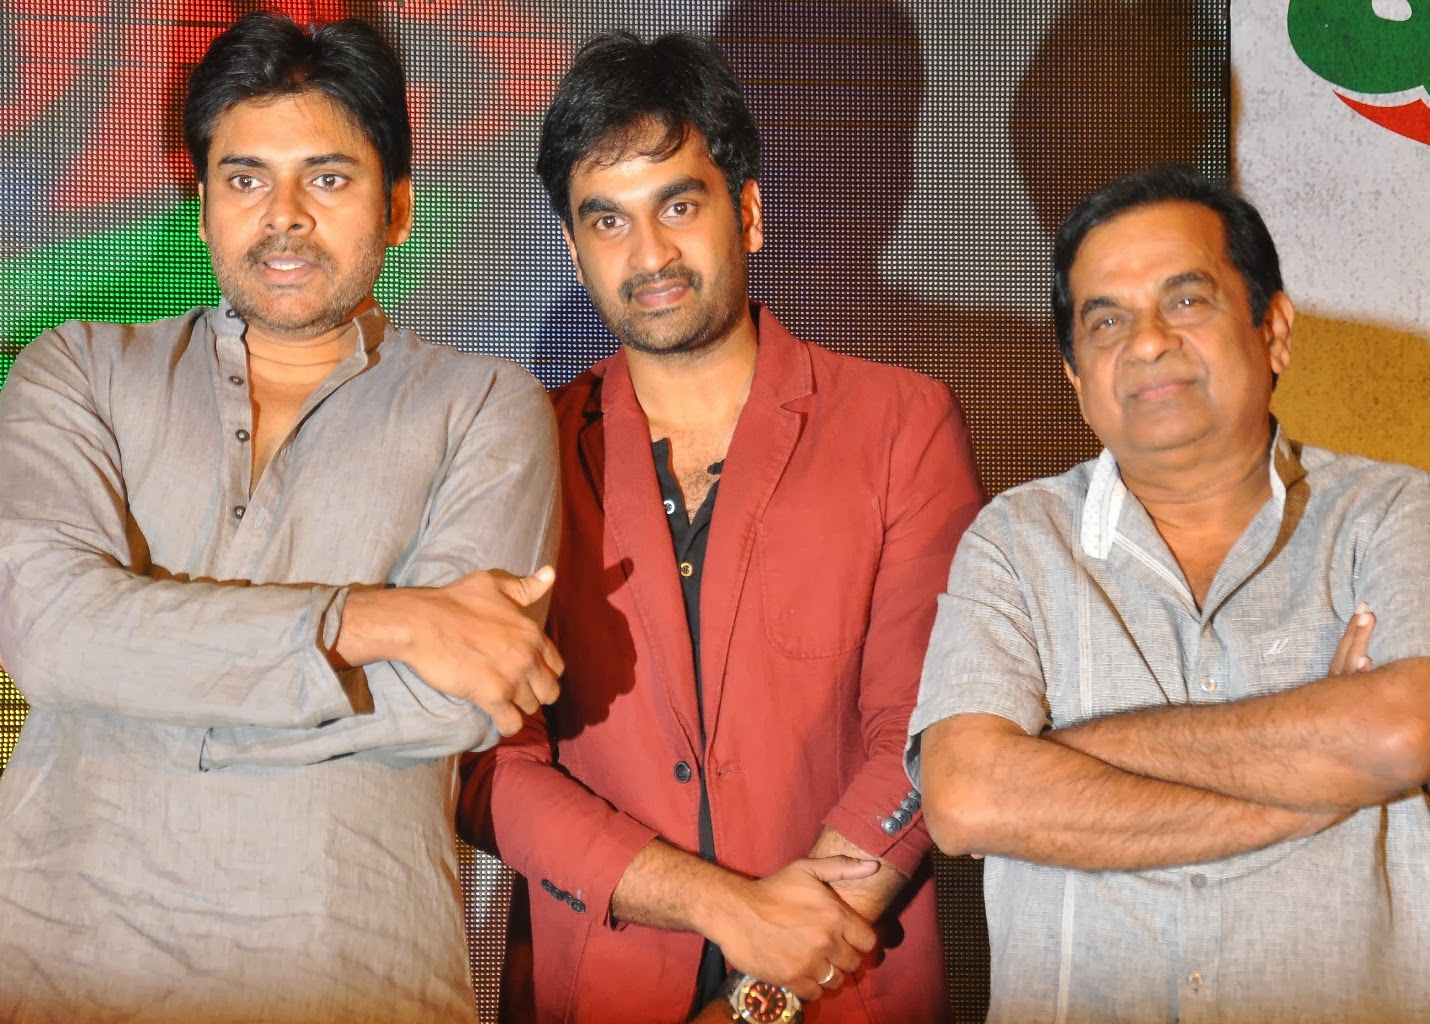 basanti audio launch, mp3 songs launch, pawan kalyan, brahmanandam,celebs at basanthi audio functions, hd stills, pics, photos, photo gallery